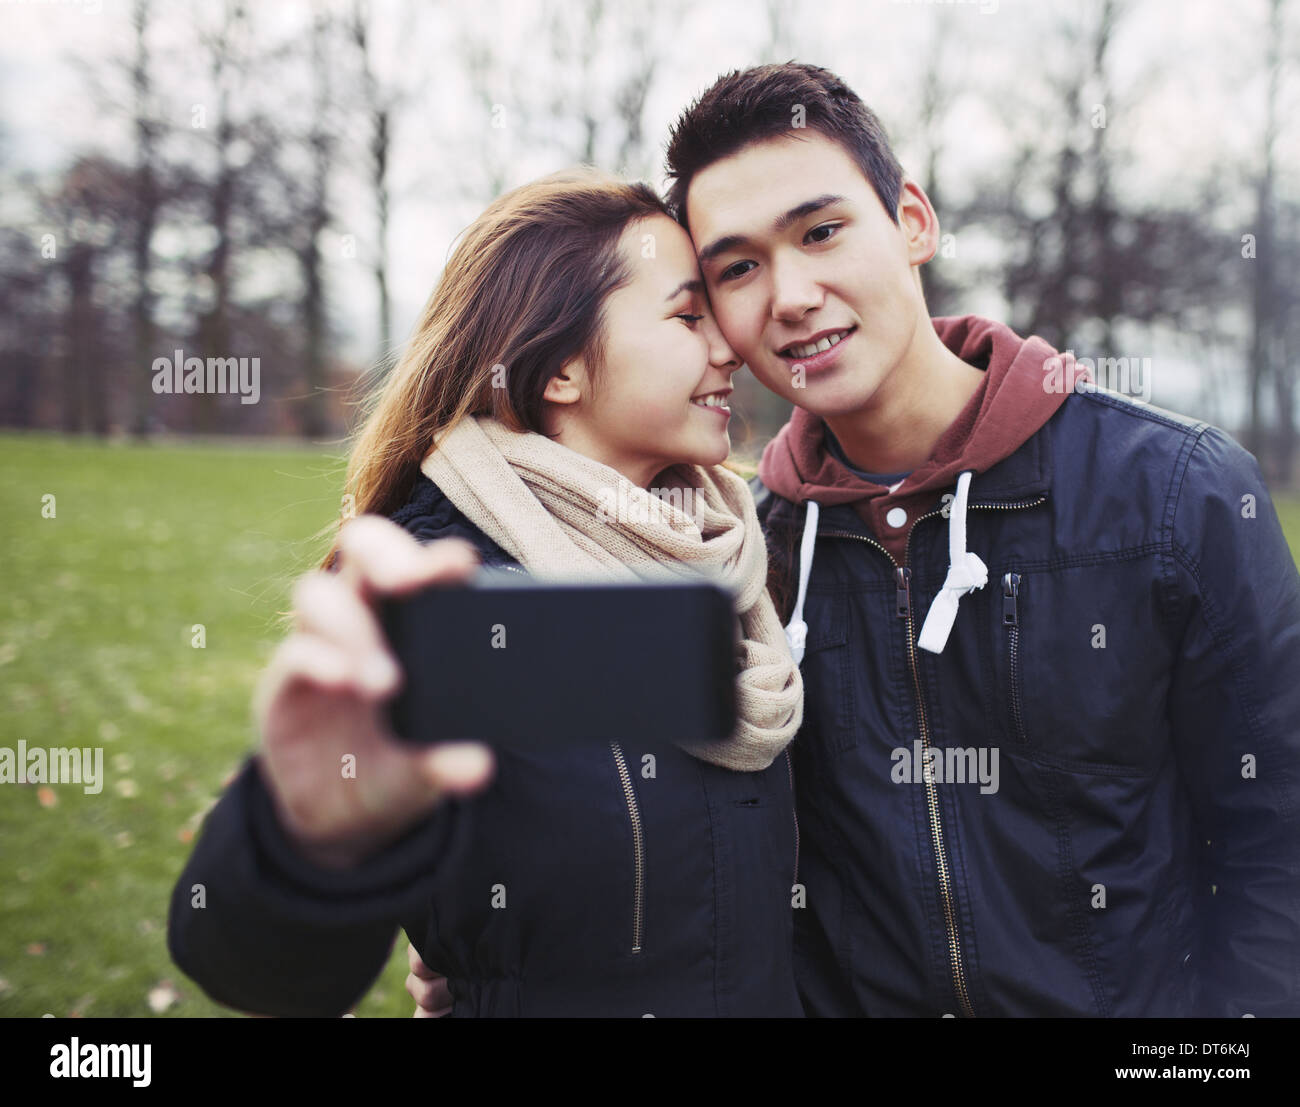 Affectionate young couple taking pictures using a smart phone at the park. Teenage boy and girl in love photographing - Stock Image